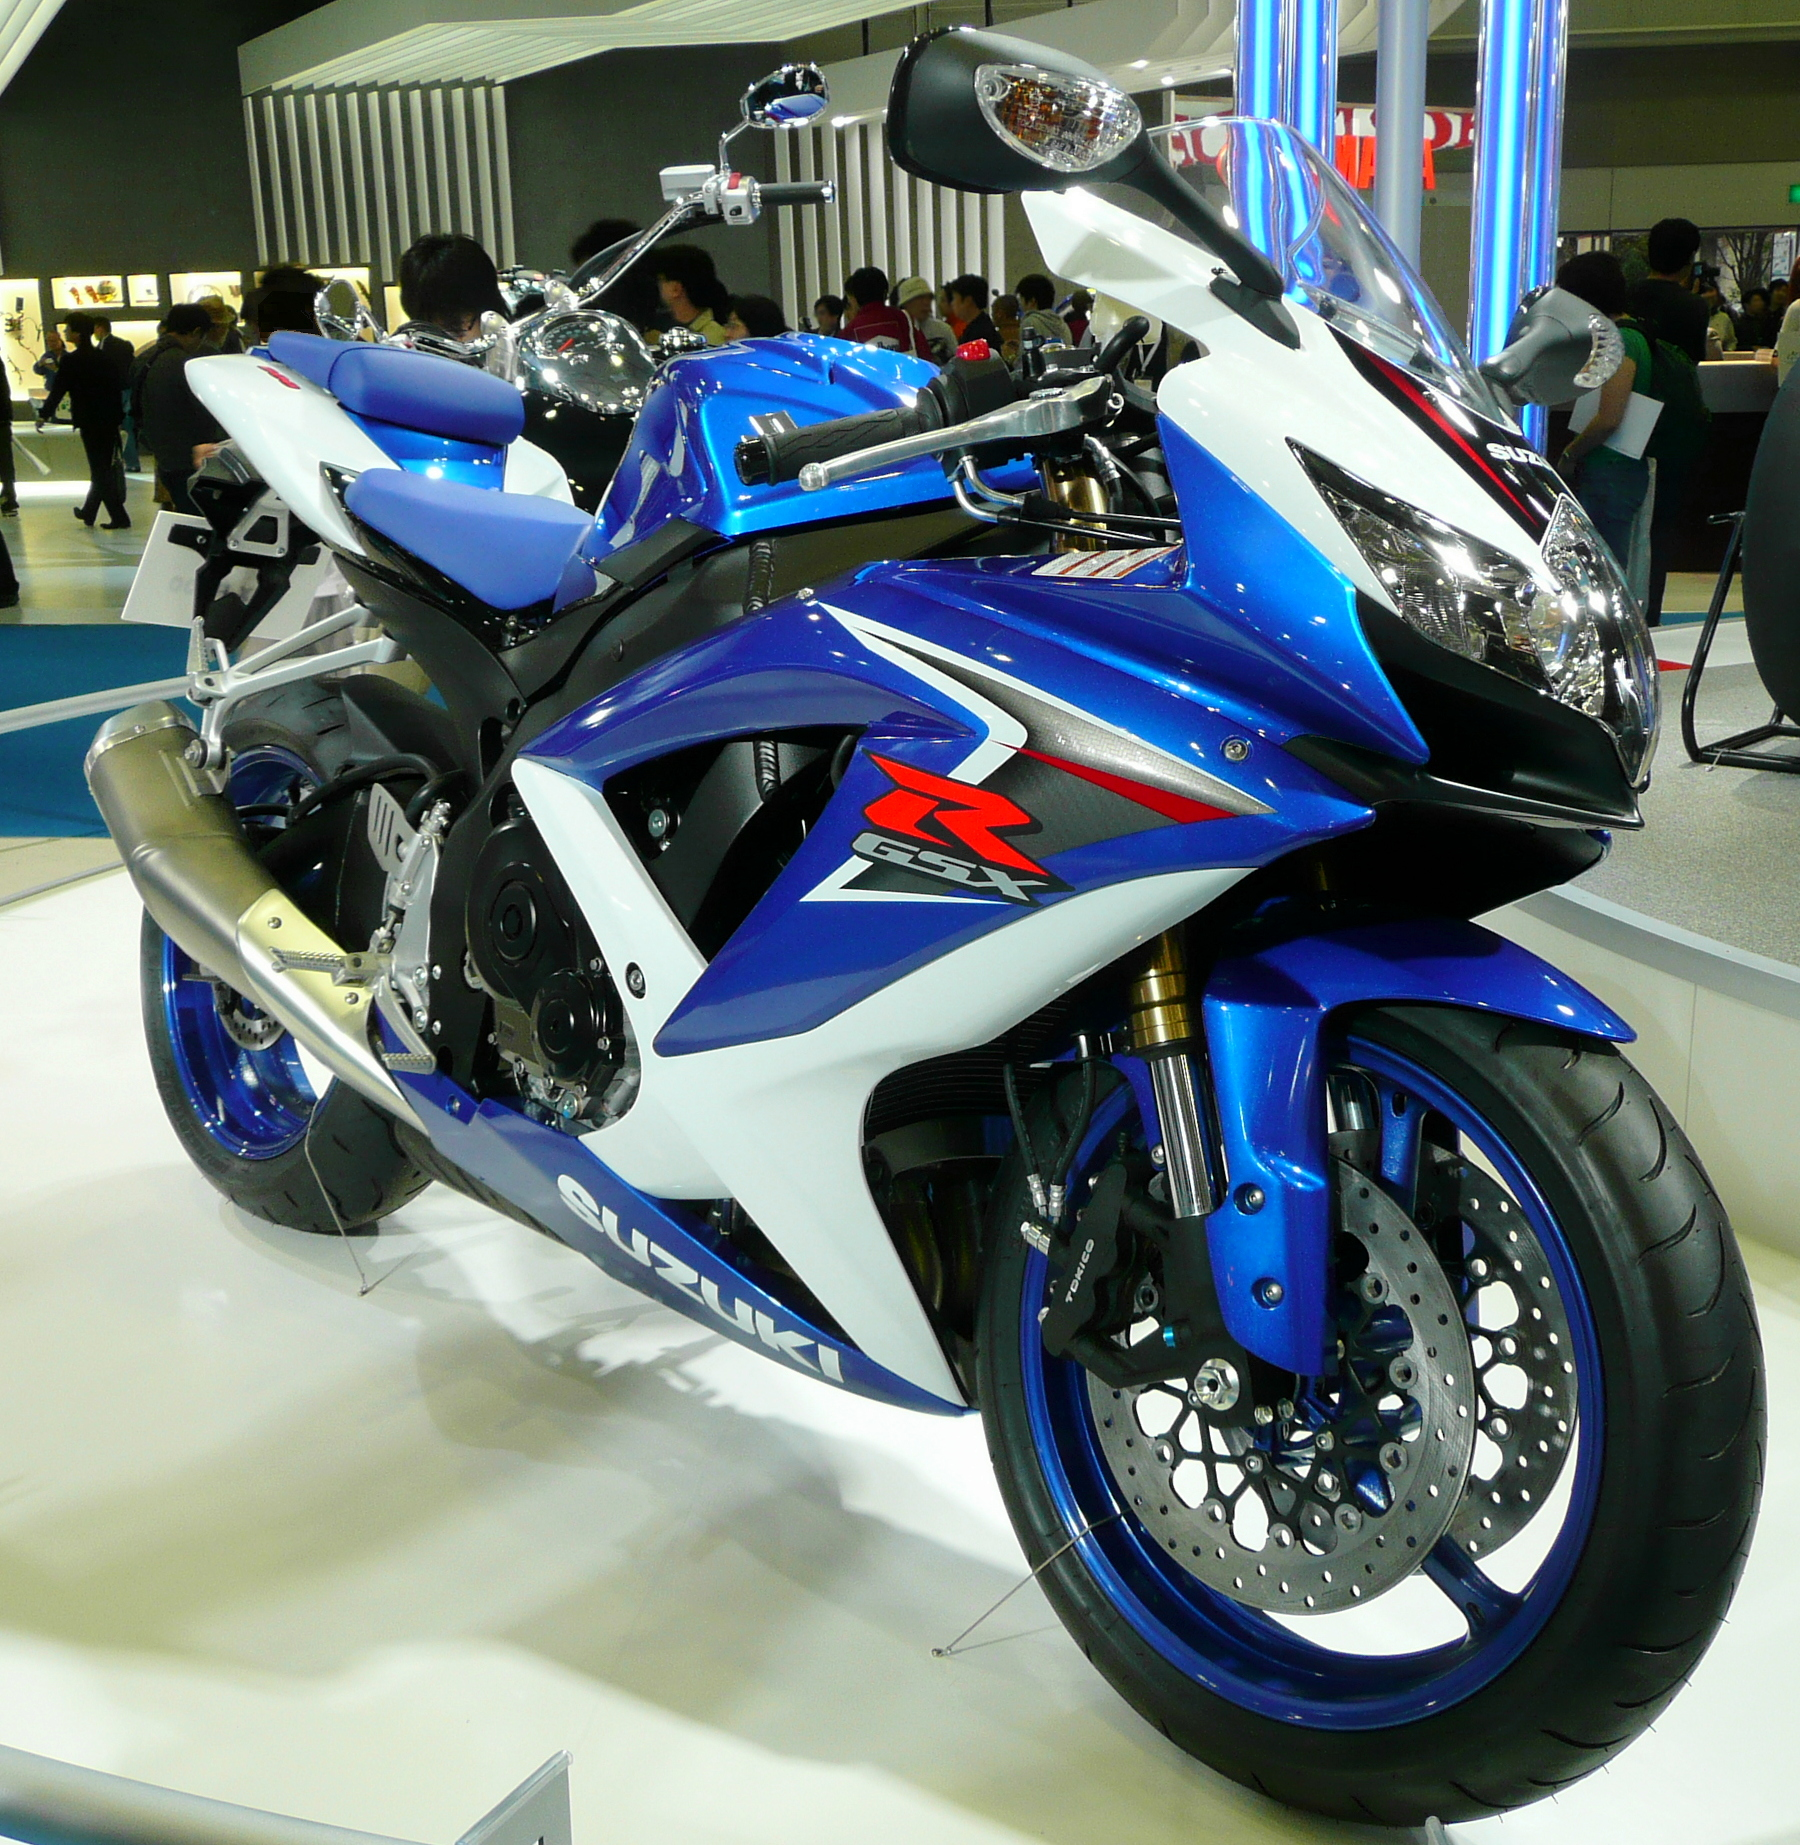 Suzuki gsx-r600 photo - 2